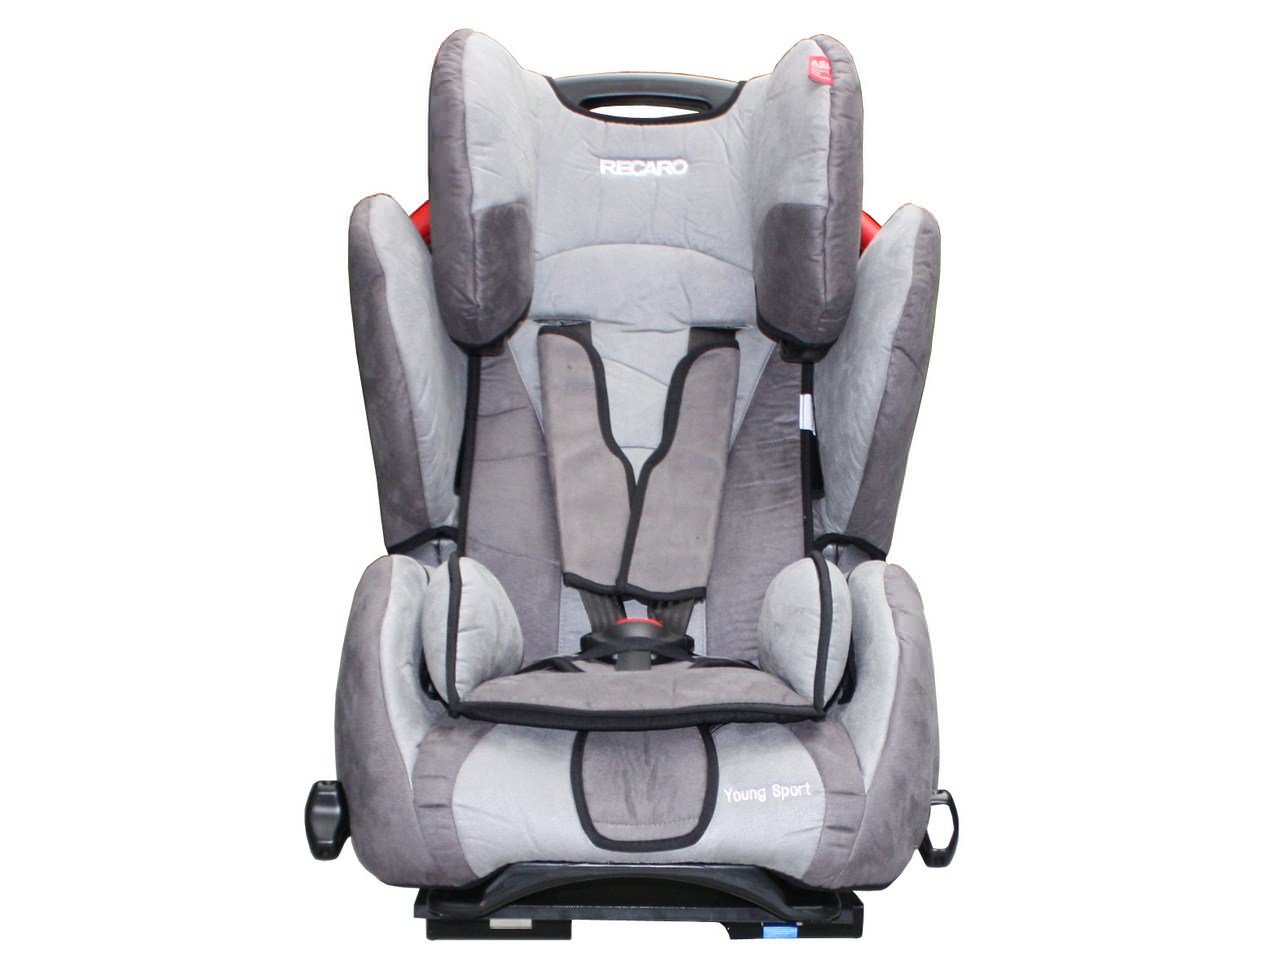 Siege auto pivotant groupe 1 2 3 - Siege auto groupe 2 3 isofix inclinable ...